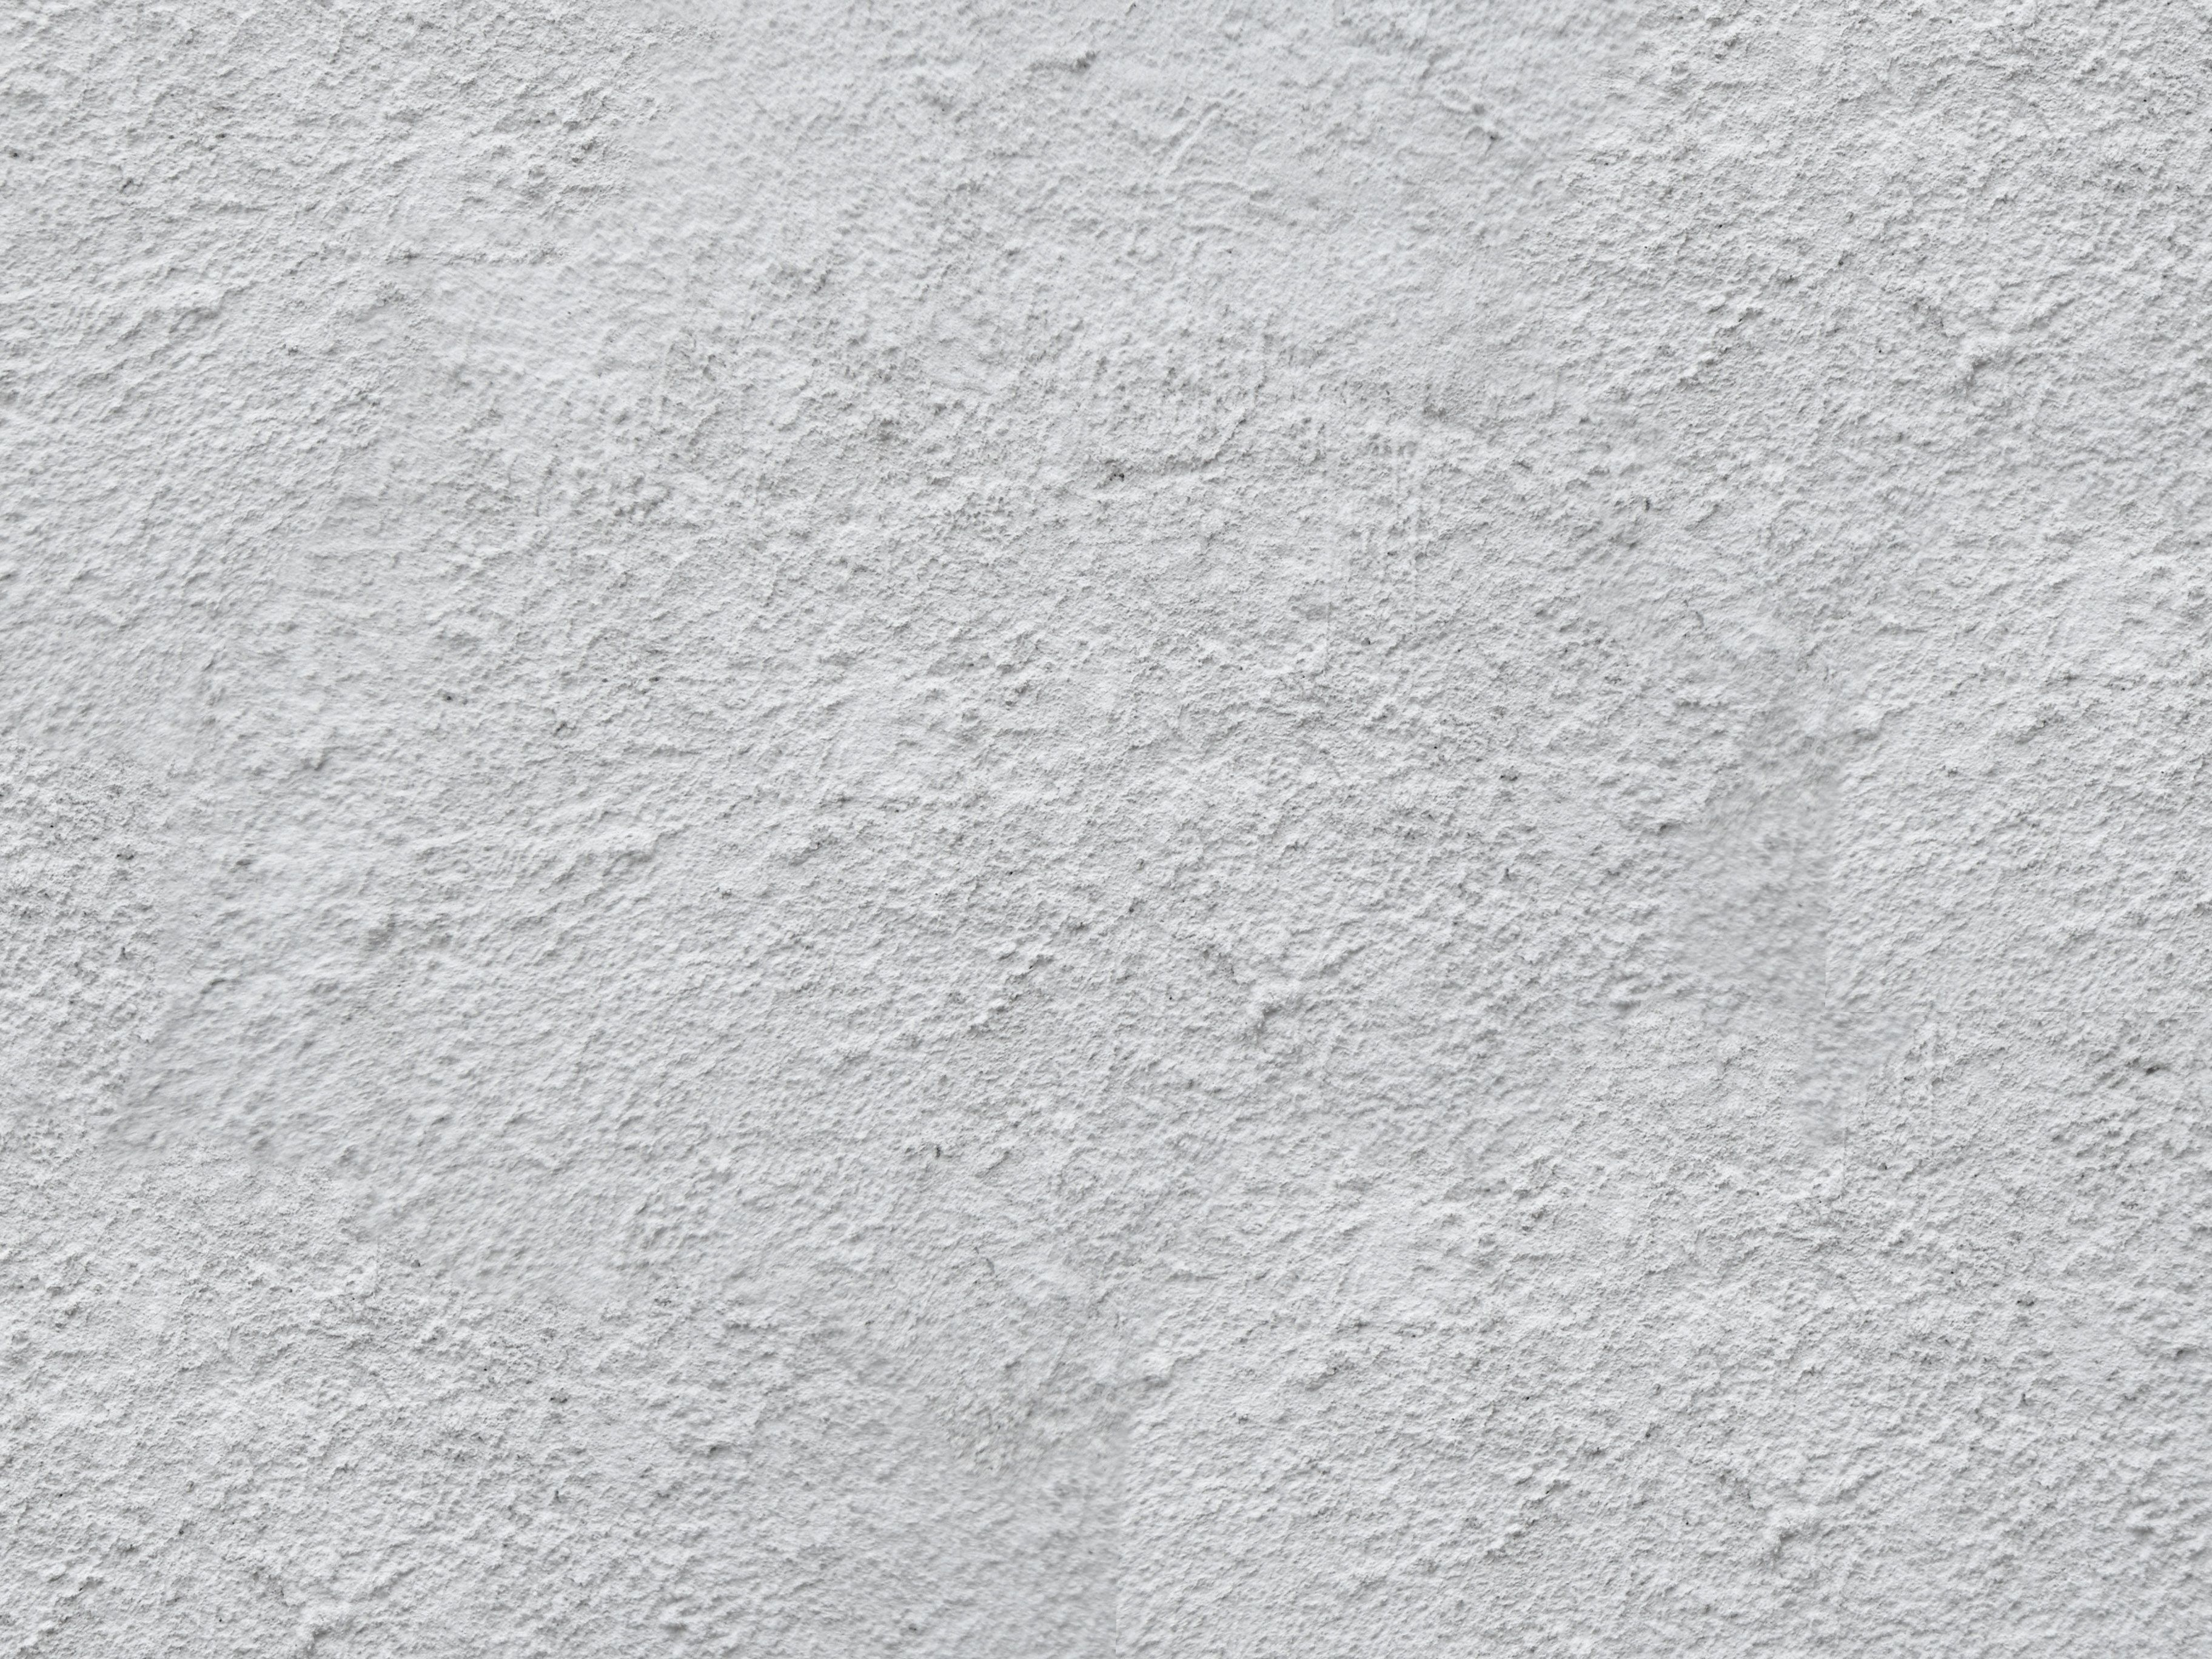 old plaster wall texture - Recherche Google | Brushes ...